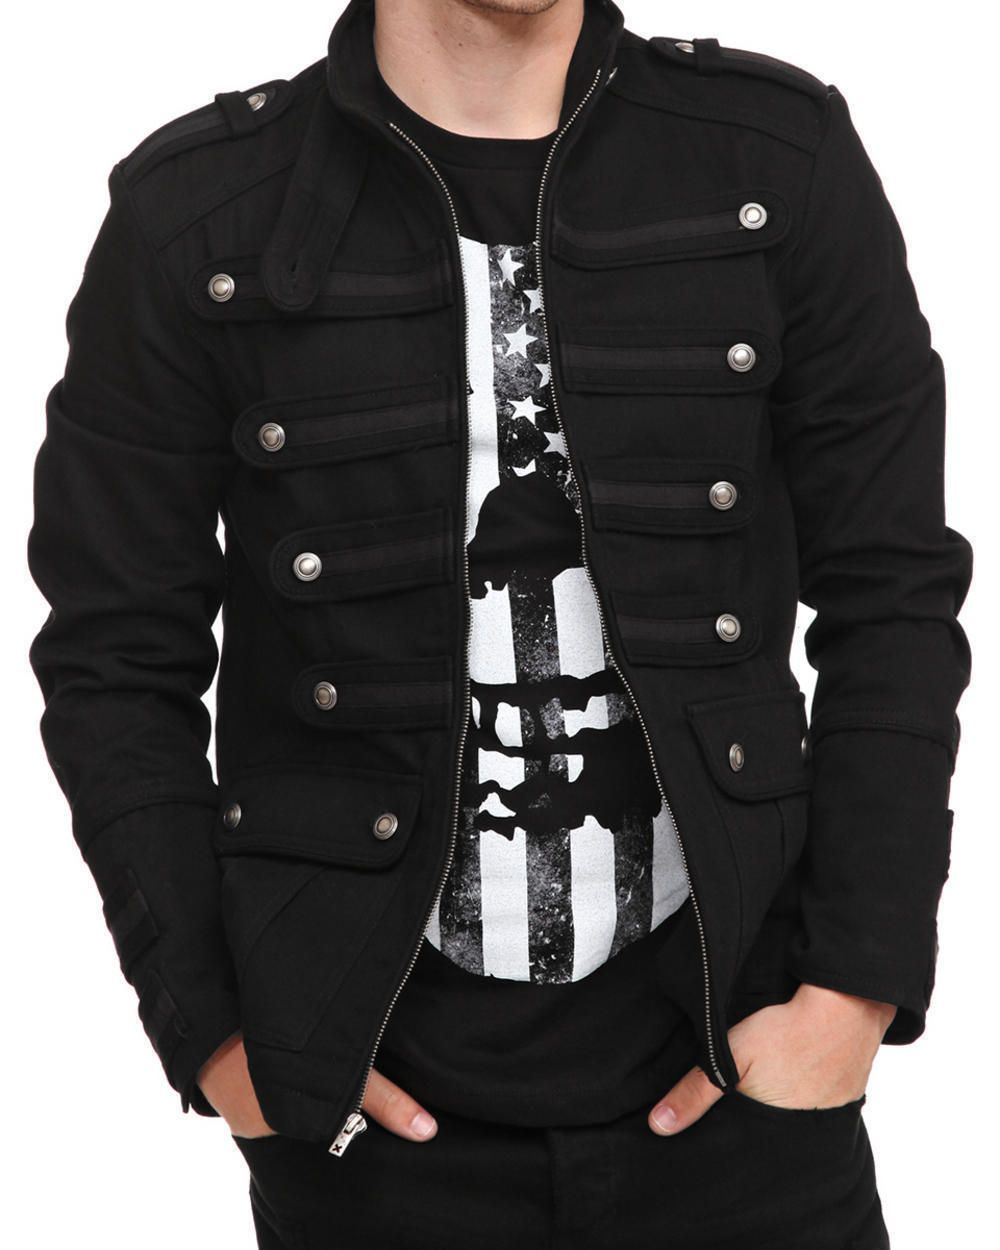 7e7729feb8 Men s Unique Gothic Steampunk Black Parade Military Marching Band Drummer  Jacket Goth Steampunk Vintage Pea Coat Gothic Military Jacket